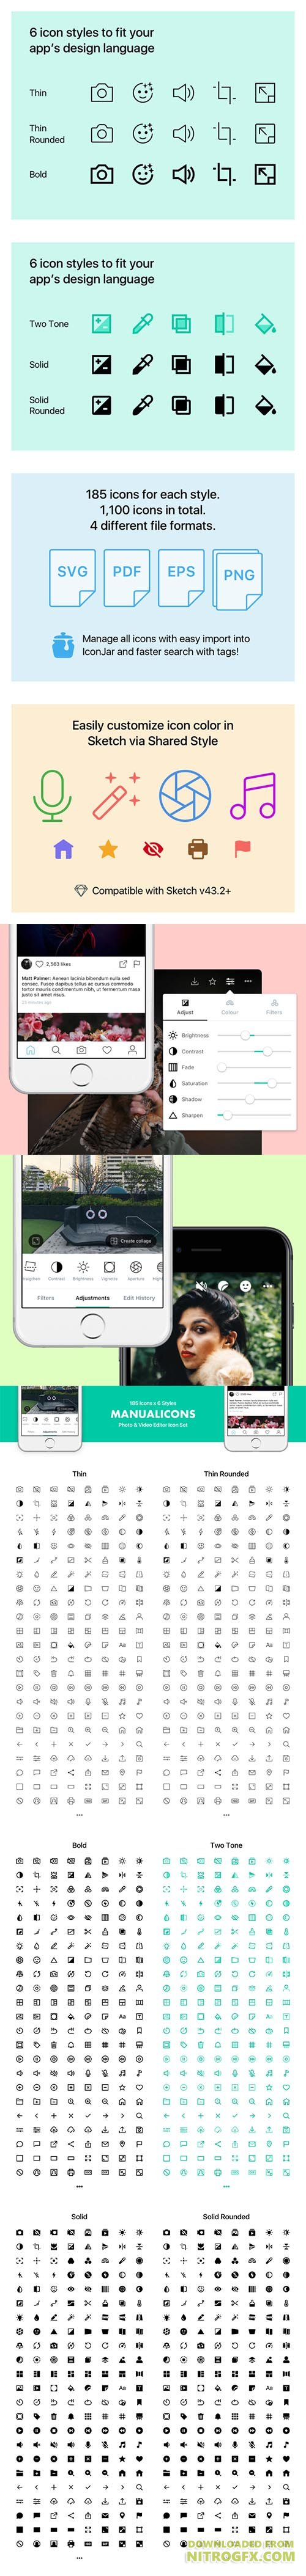 Manualicons - 185 Clean icons in 6 styles for your photo & video editor UI & more